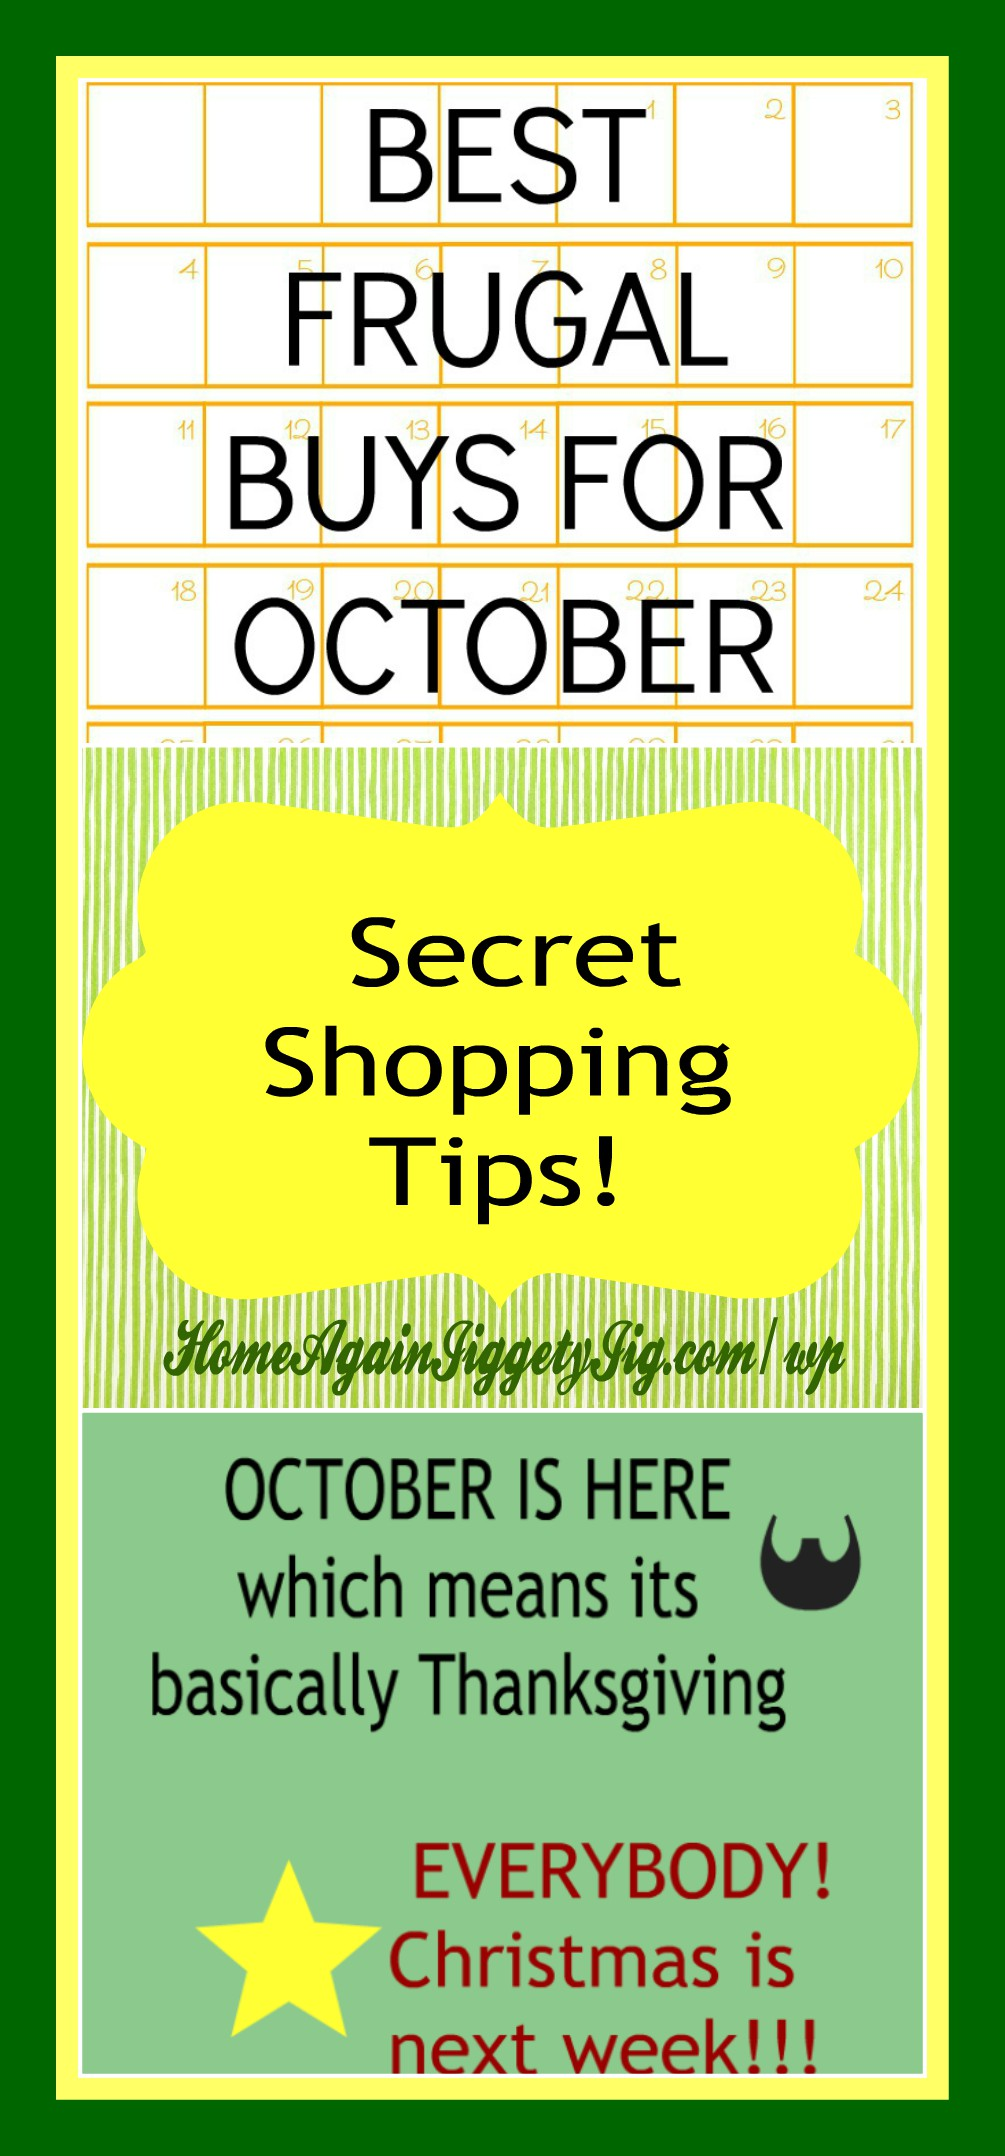 Secret shopping tips for october home again jiggety jig for What is the best month to buy a house